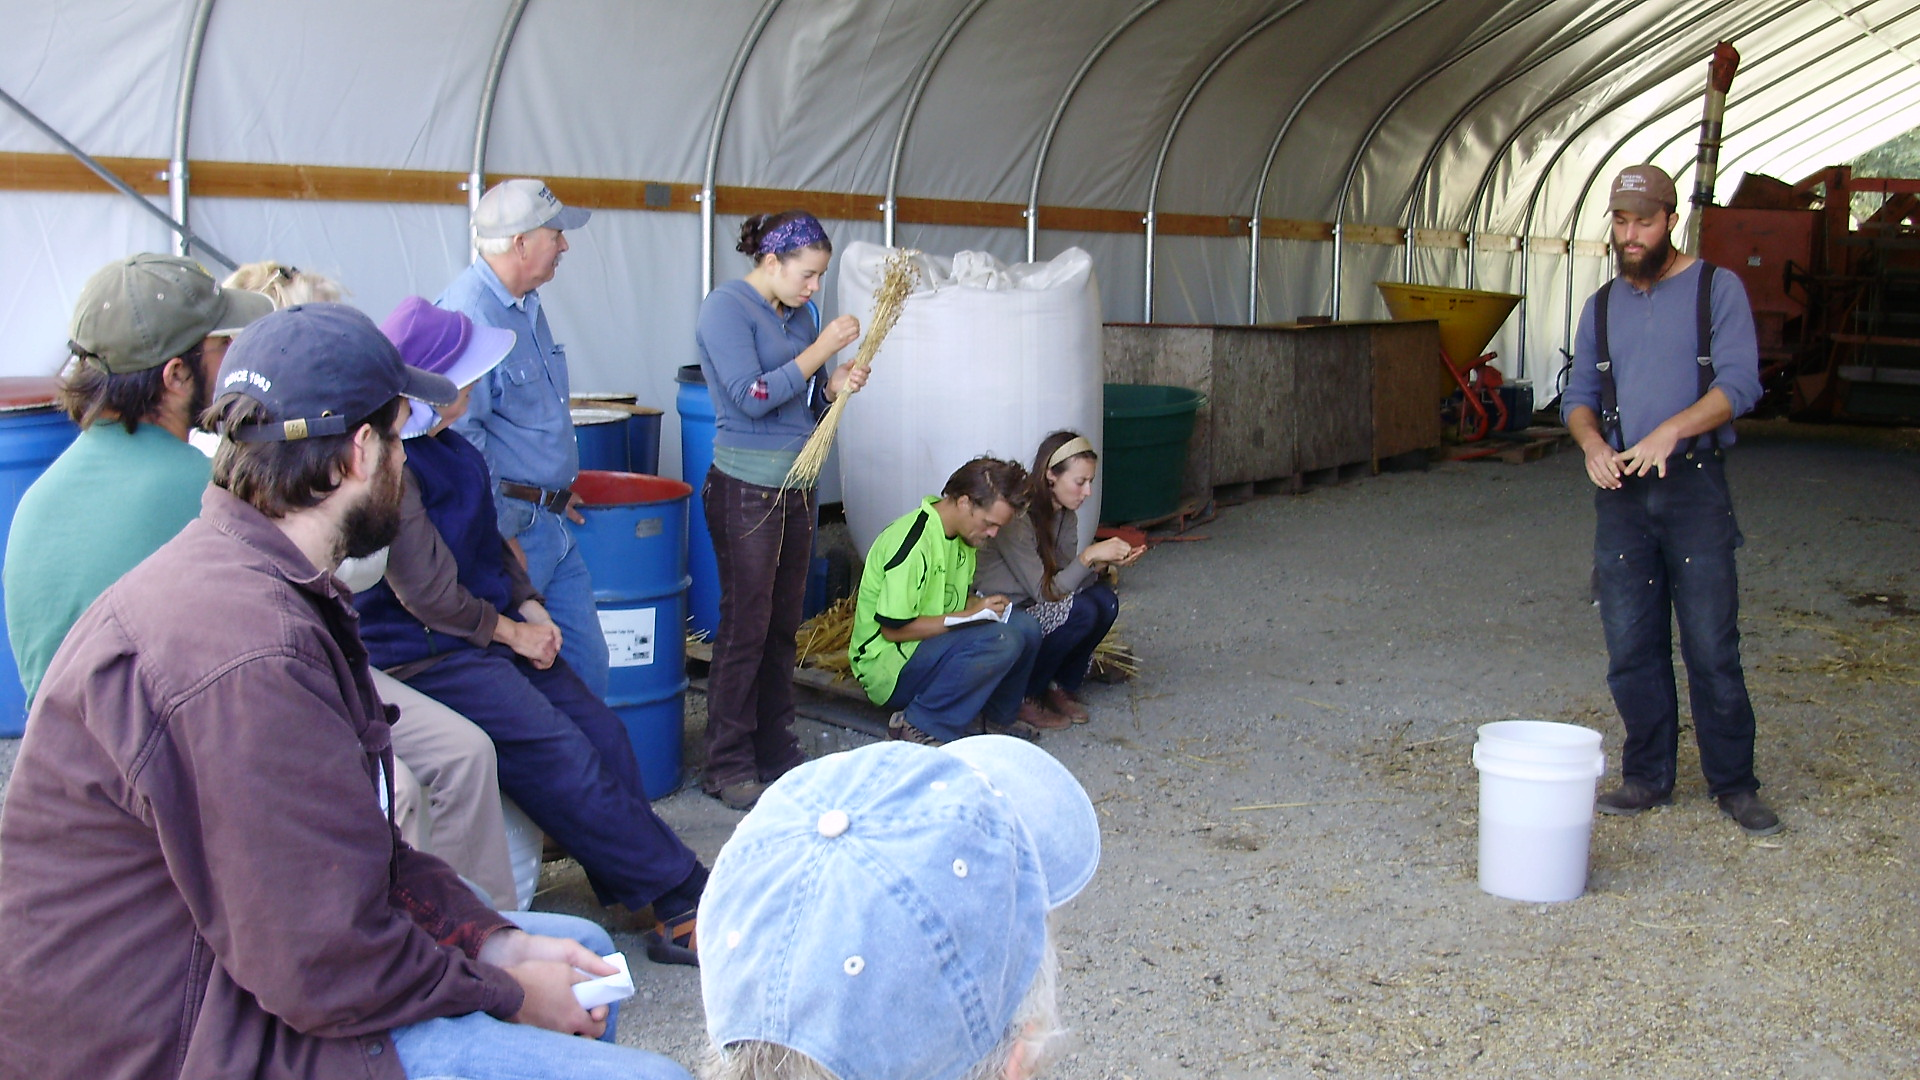 Report From Osa S Grain Amp Seed Field Day In Humboldt